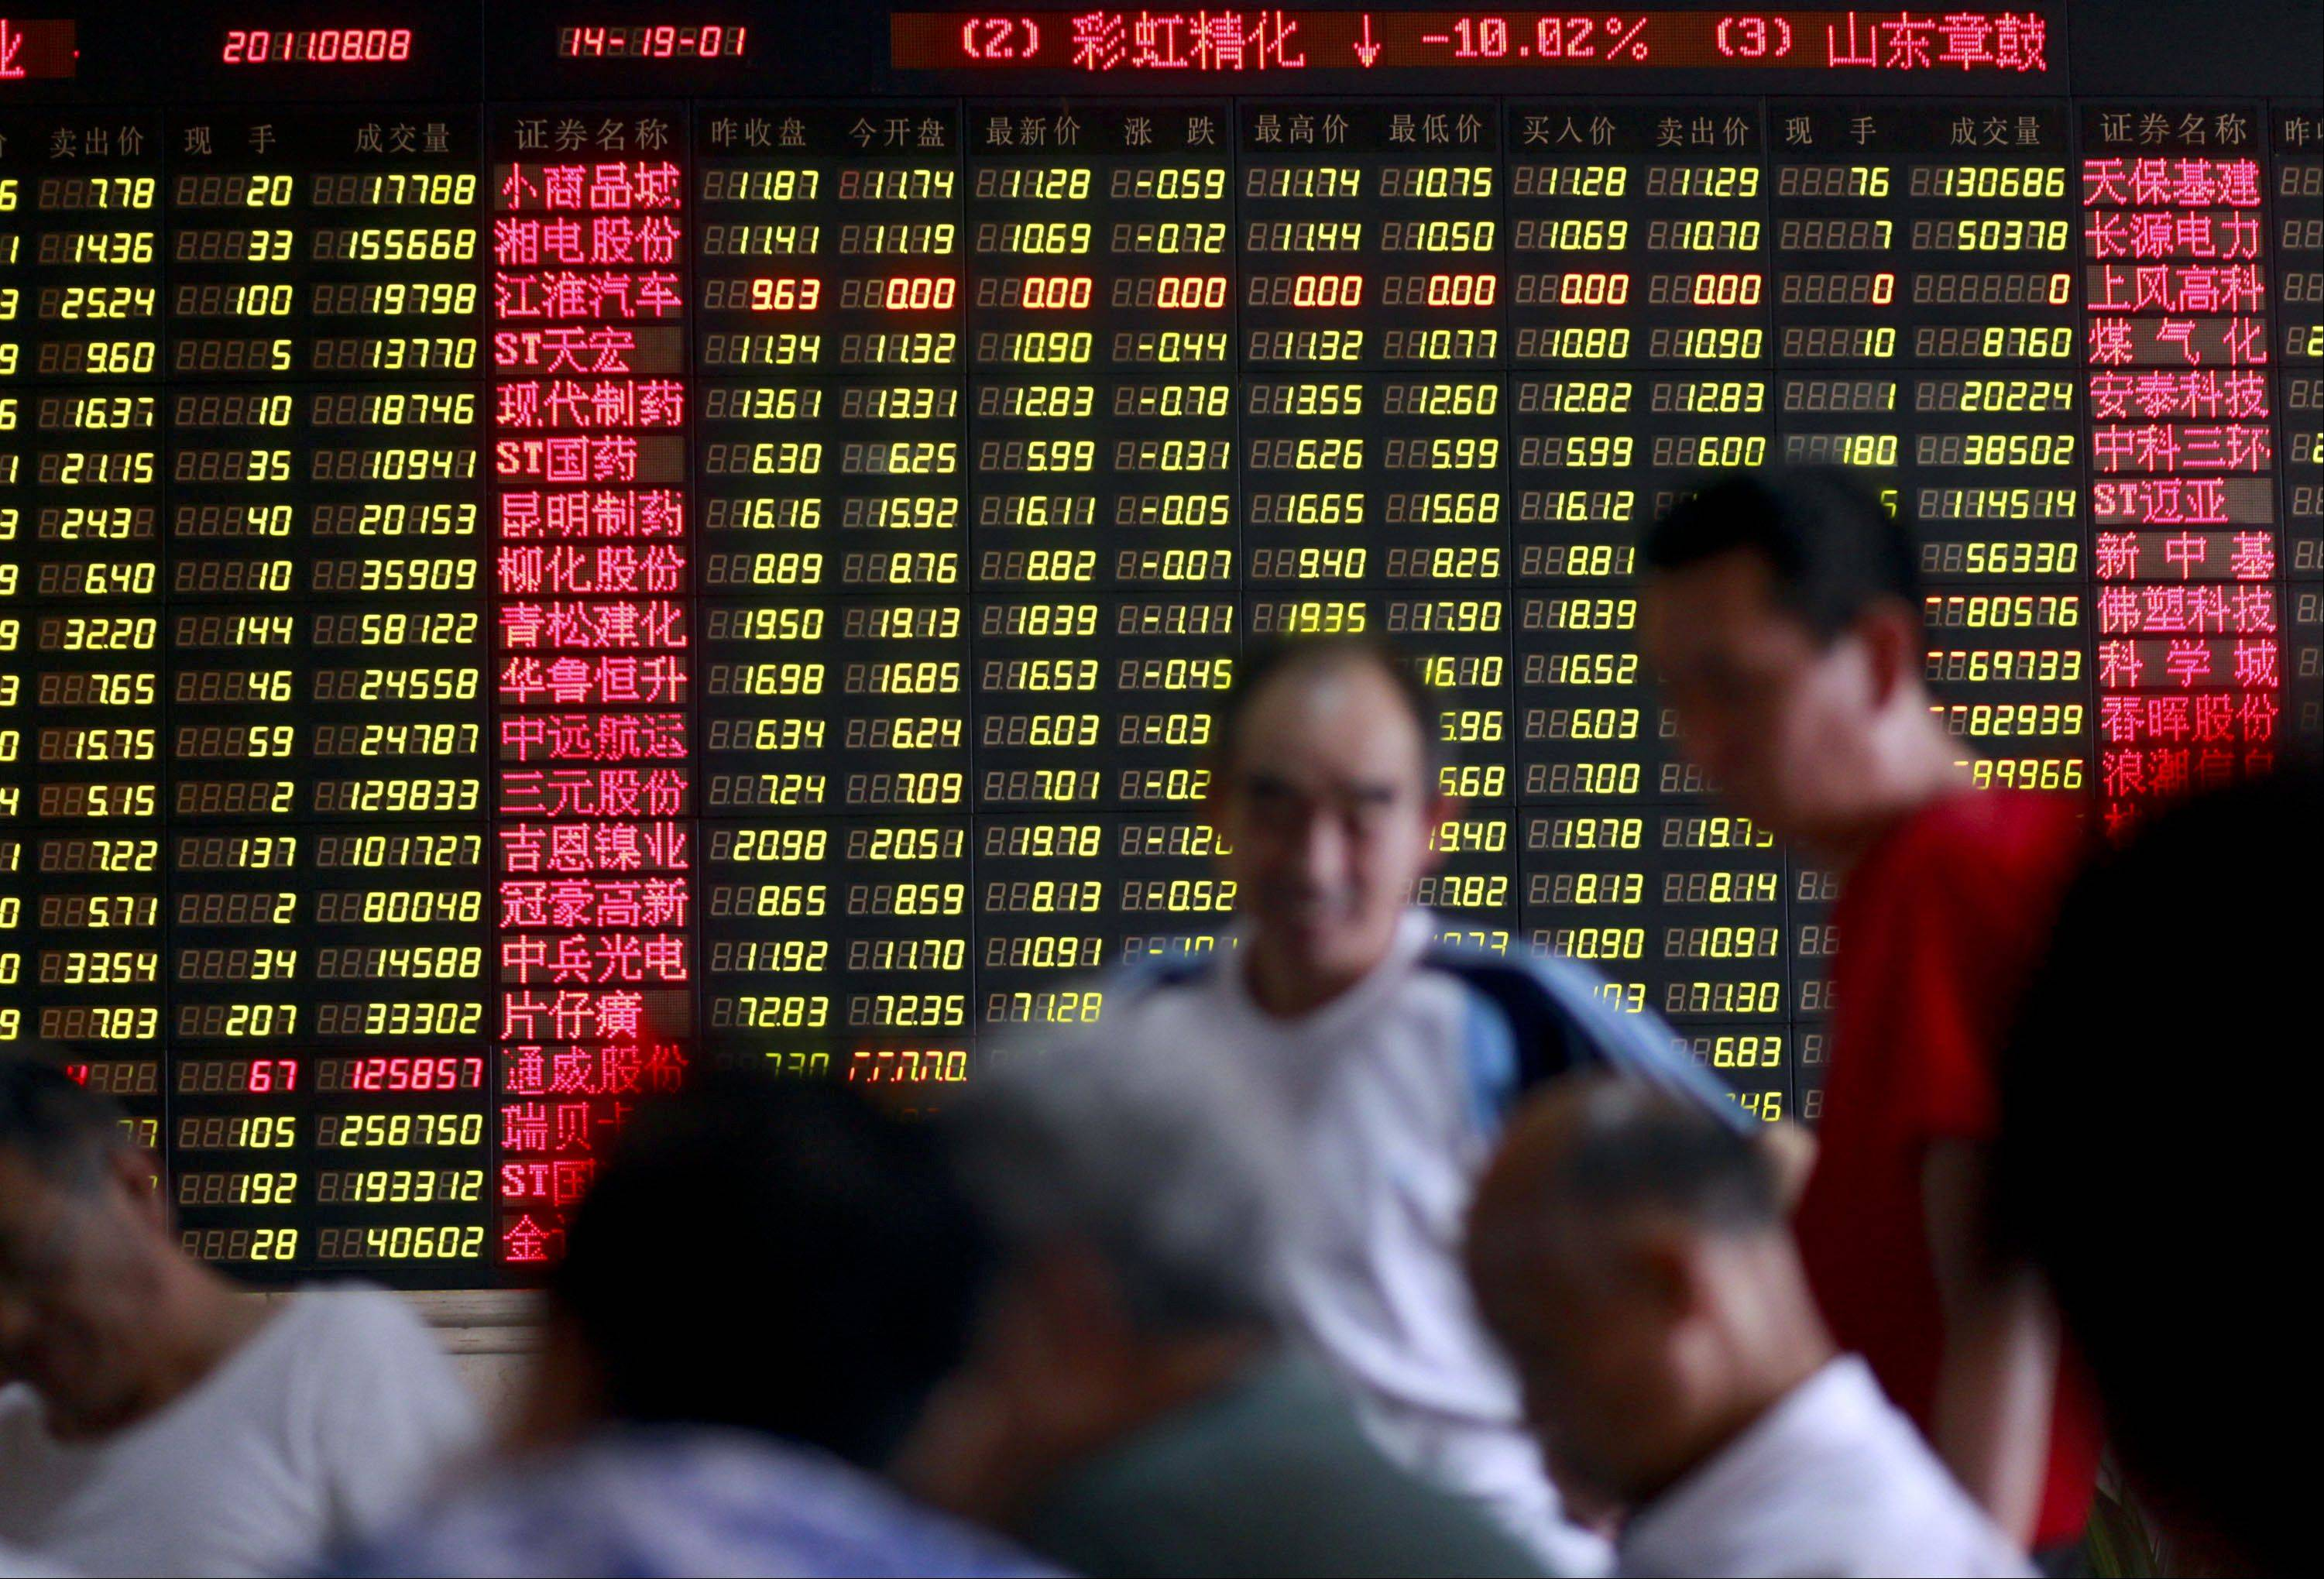 Investors monitor prices and make trades at a securities exchange house in Shanghai, China, on Monday, Aug. 8, 2011. China's stocks fell, dragging the benchmark index down 20 percent from a November high, as the loss of America's top credit rating fueled concern global economic growth will slow.